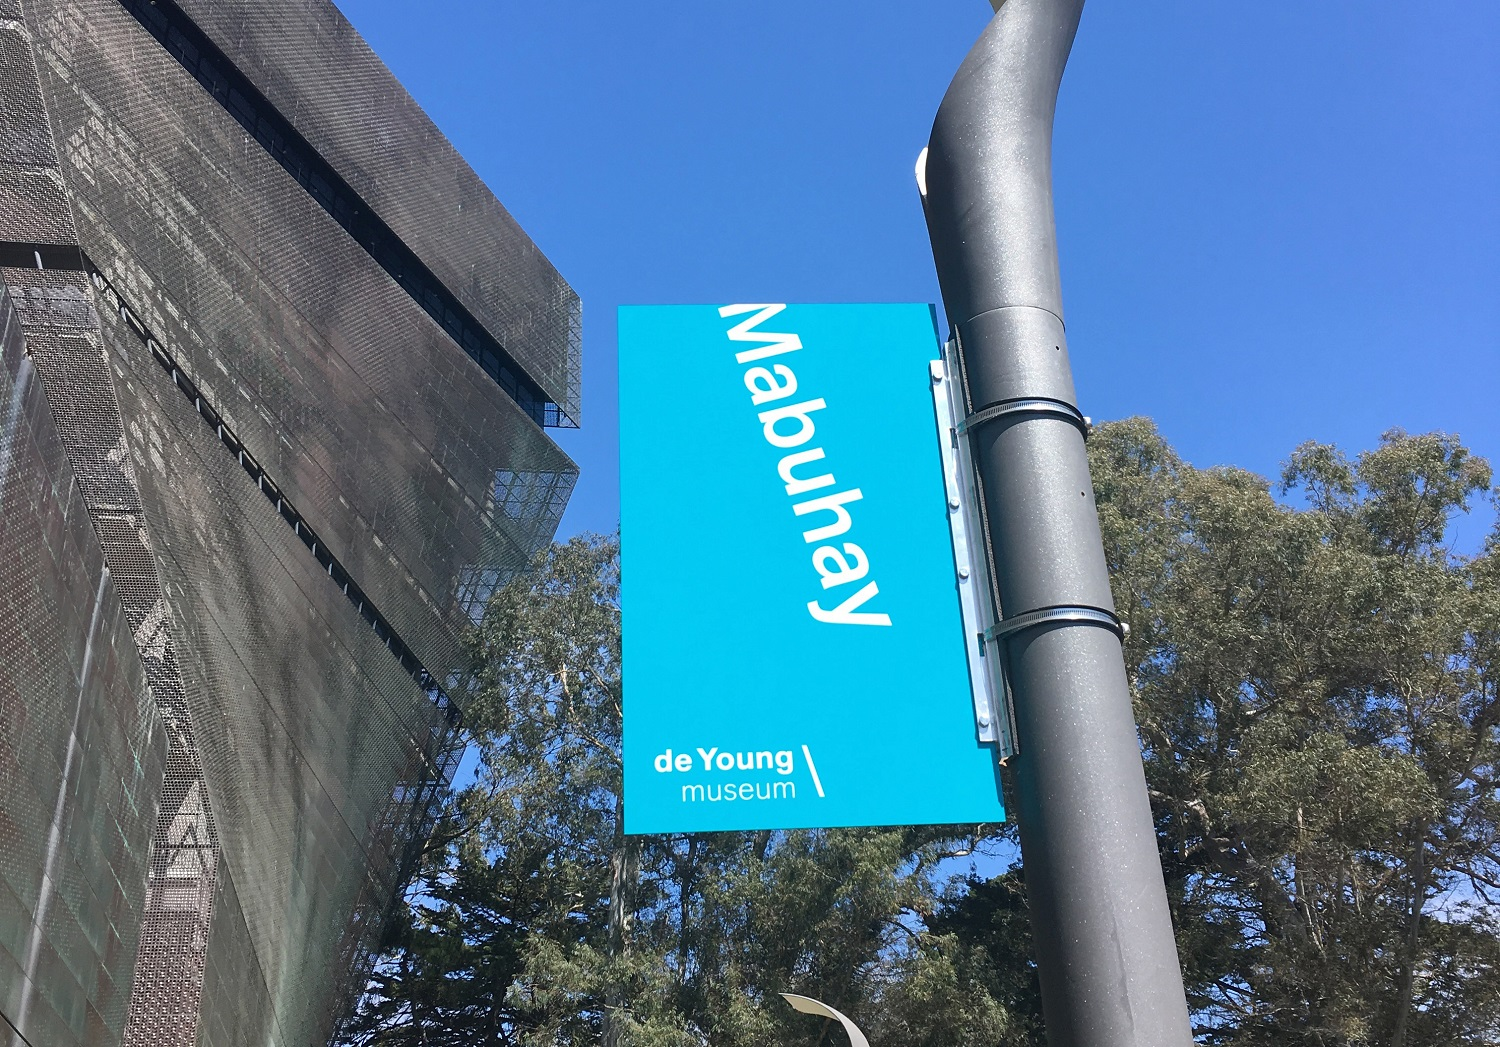 Exterior image of the de Young museum with a Mabuhay/Welcome banner in teal with white letters hanging from a lamp post.